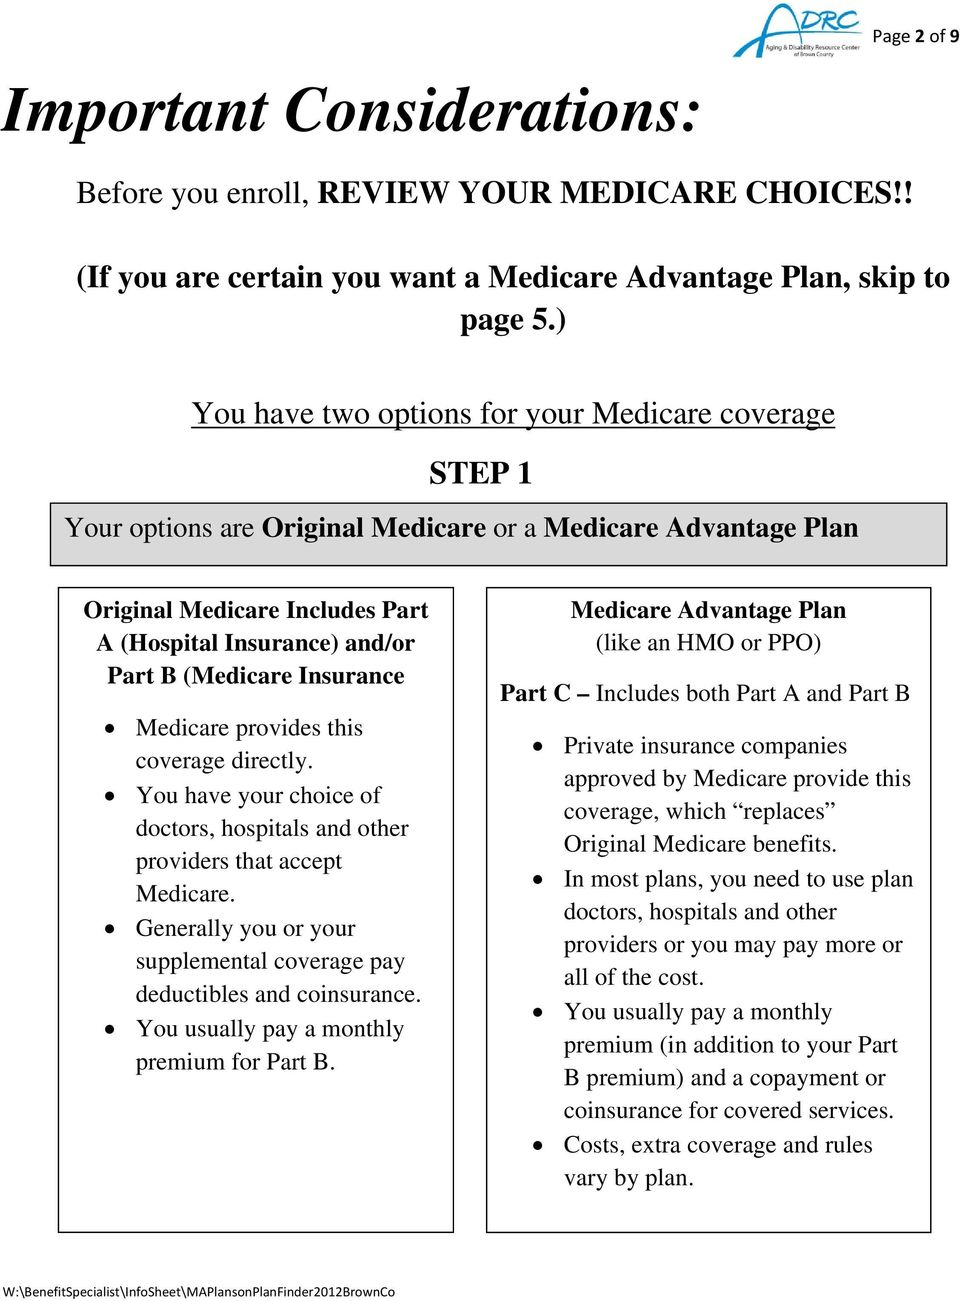 Insurance Medicare provides this coverage directly. You have your choice of doctors, hospitals and other providers that accept Medicare.